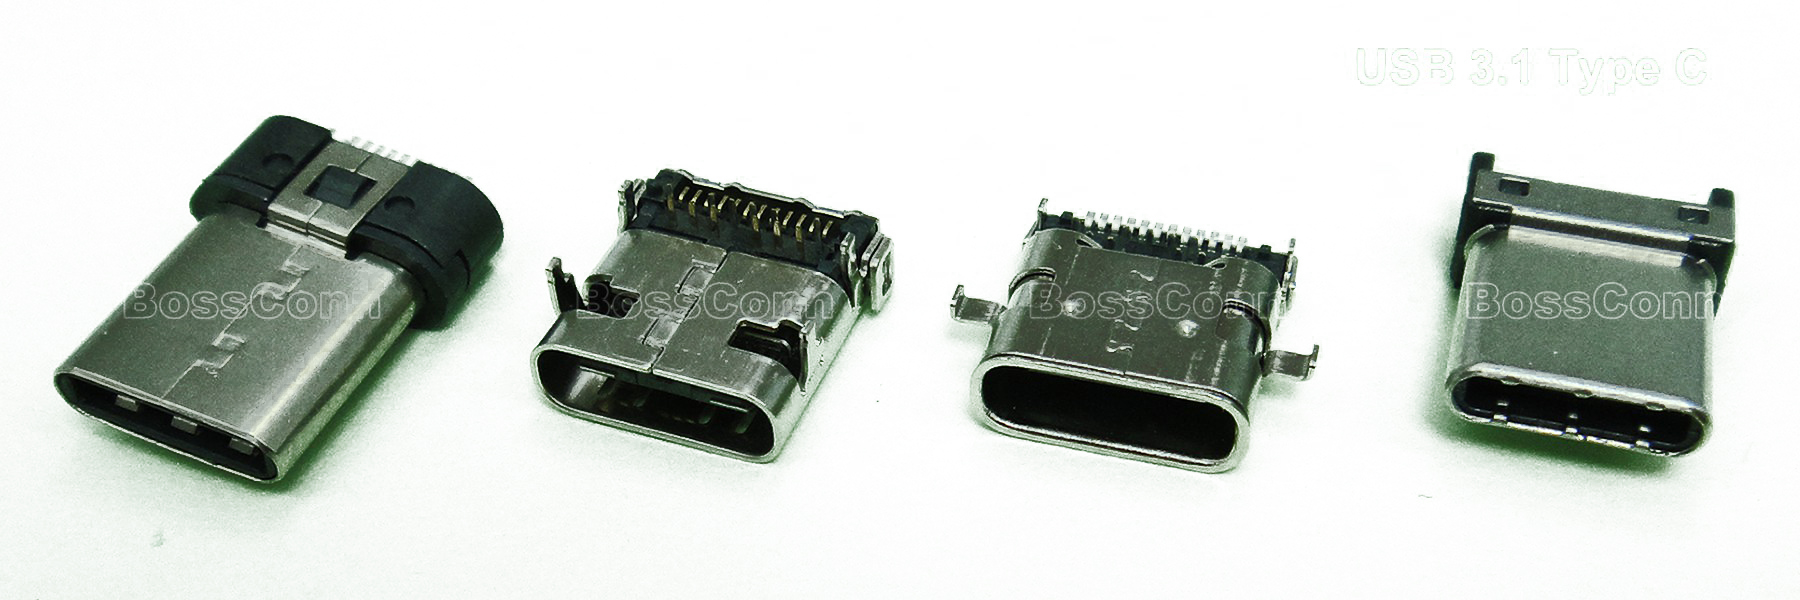 usb 3.1 type c connector